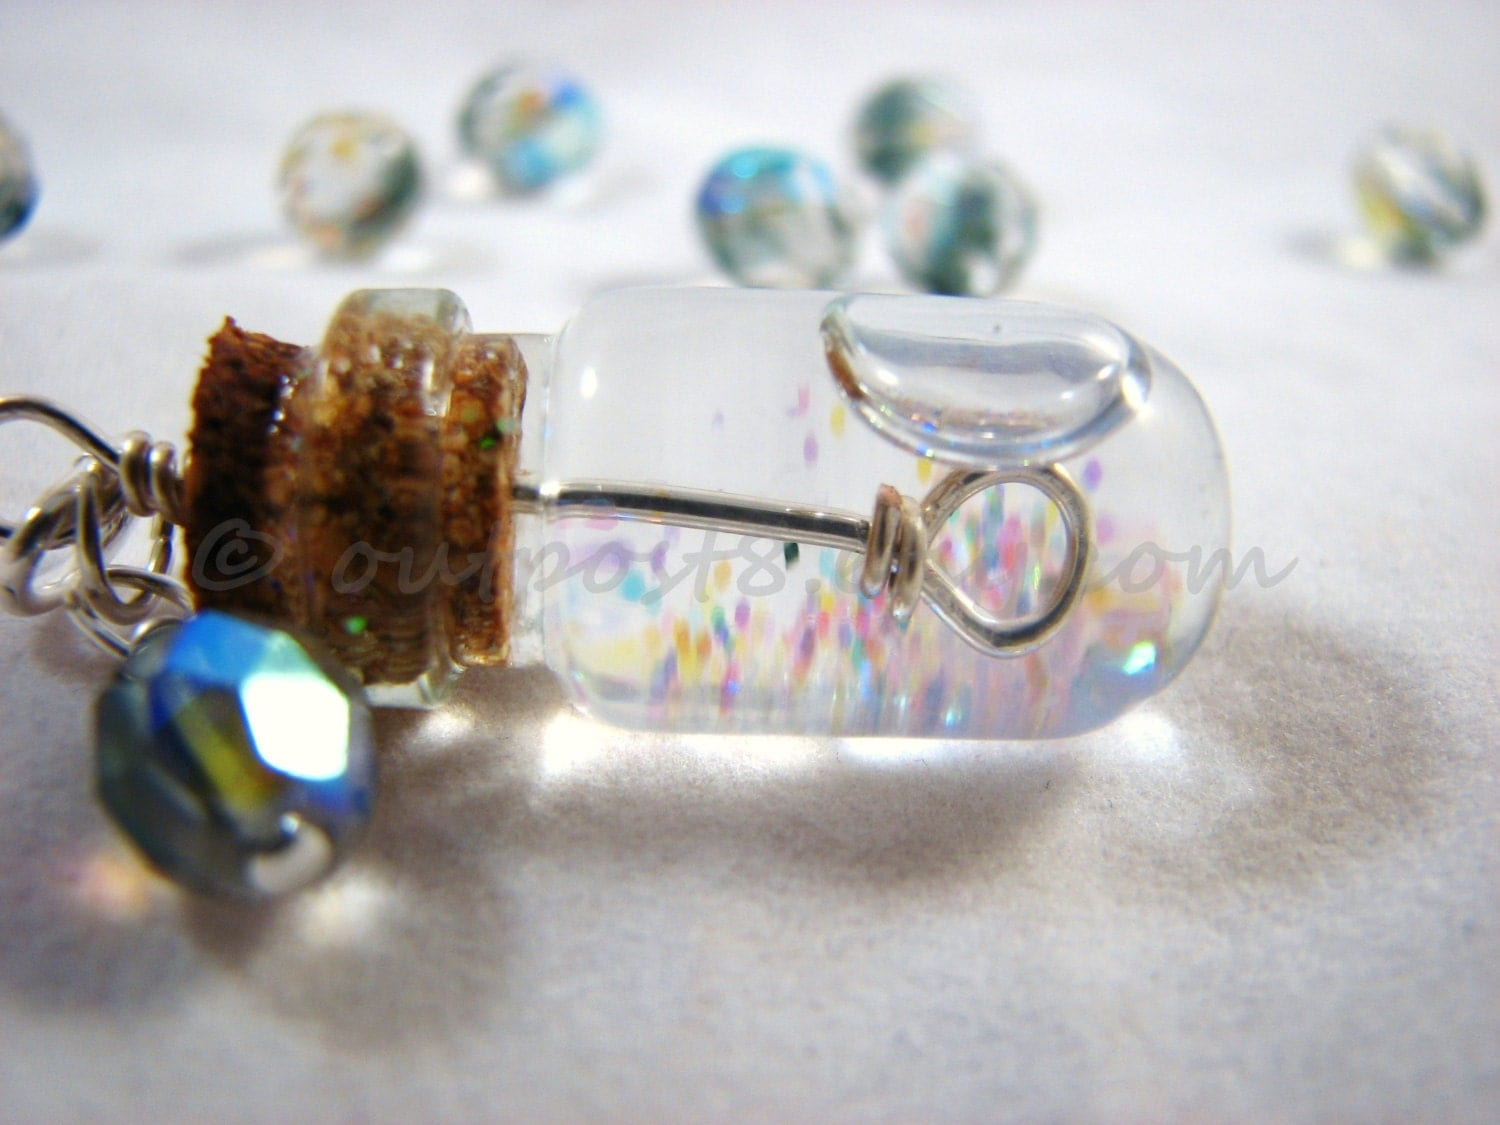 Tiny bubble soap glass bottle necklace. Bubble wand. Kawaii jewelry. Free US shipping. - Outpost8